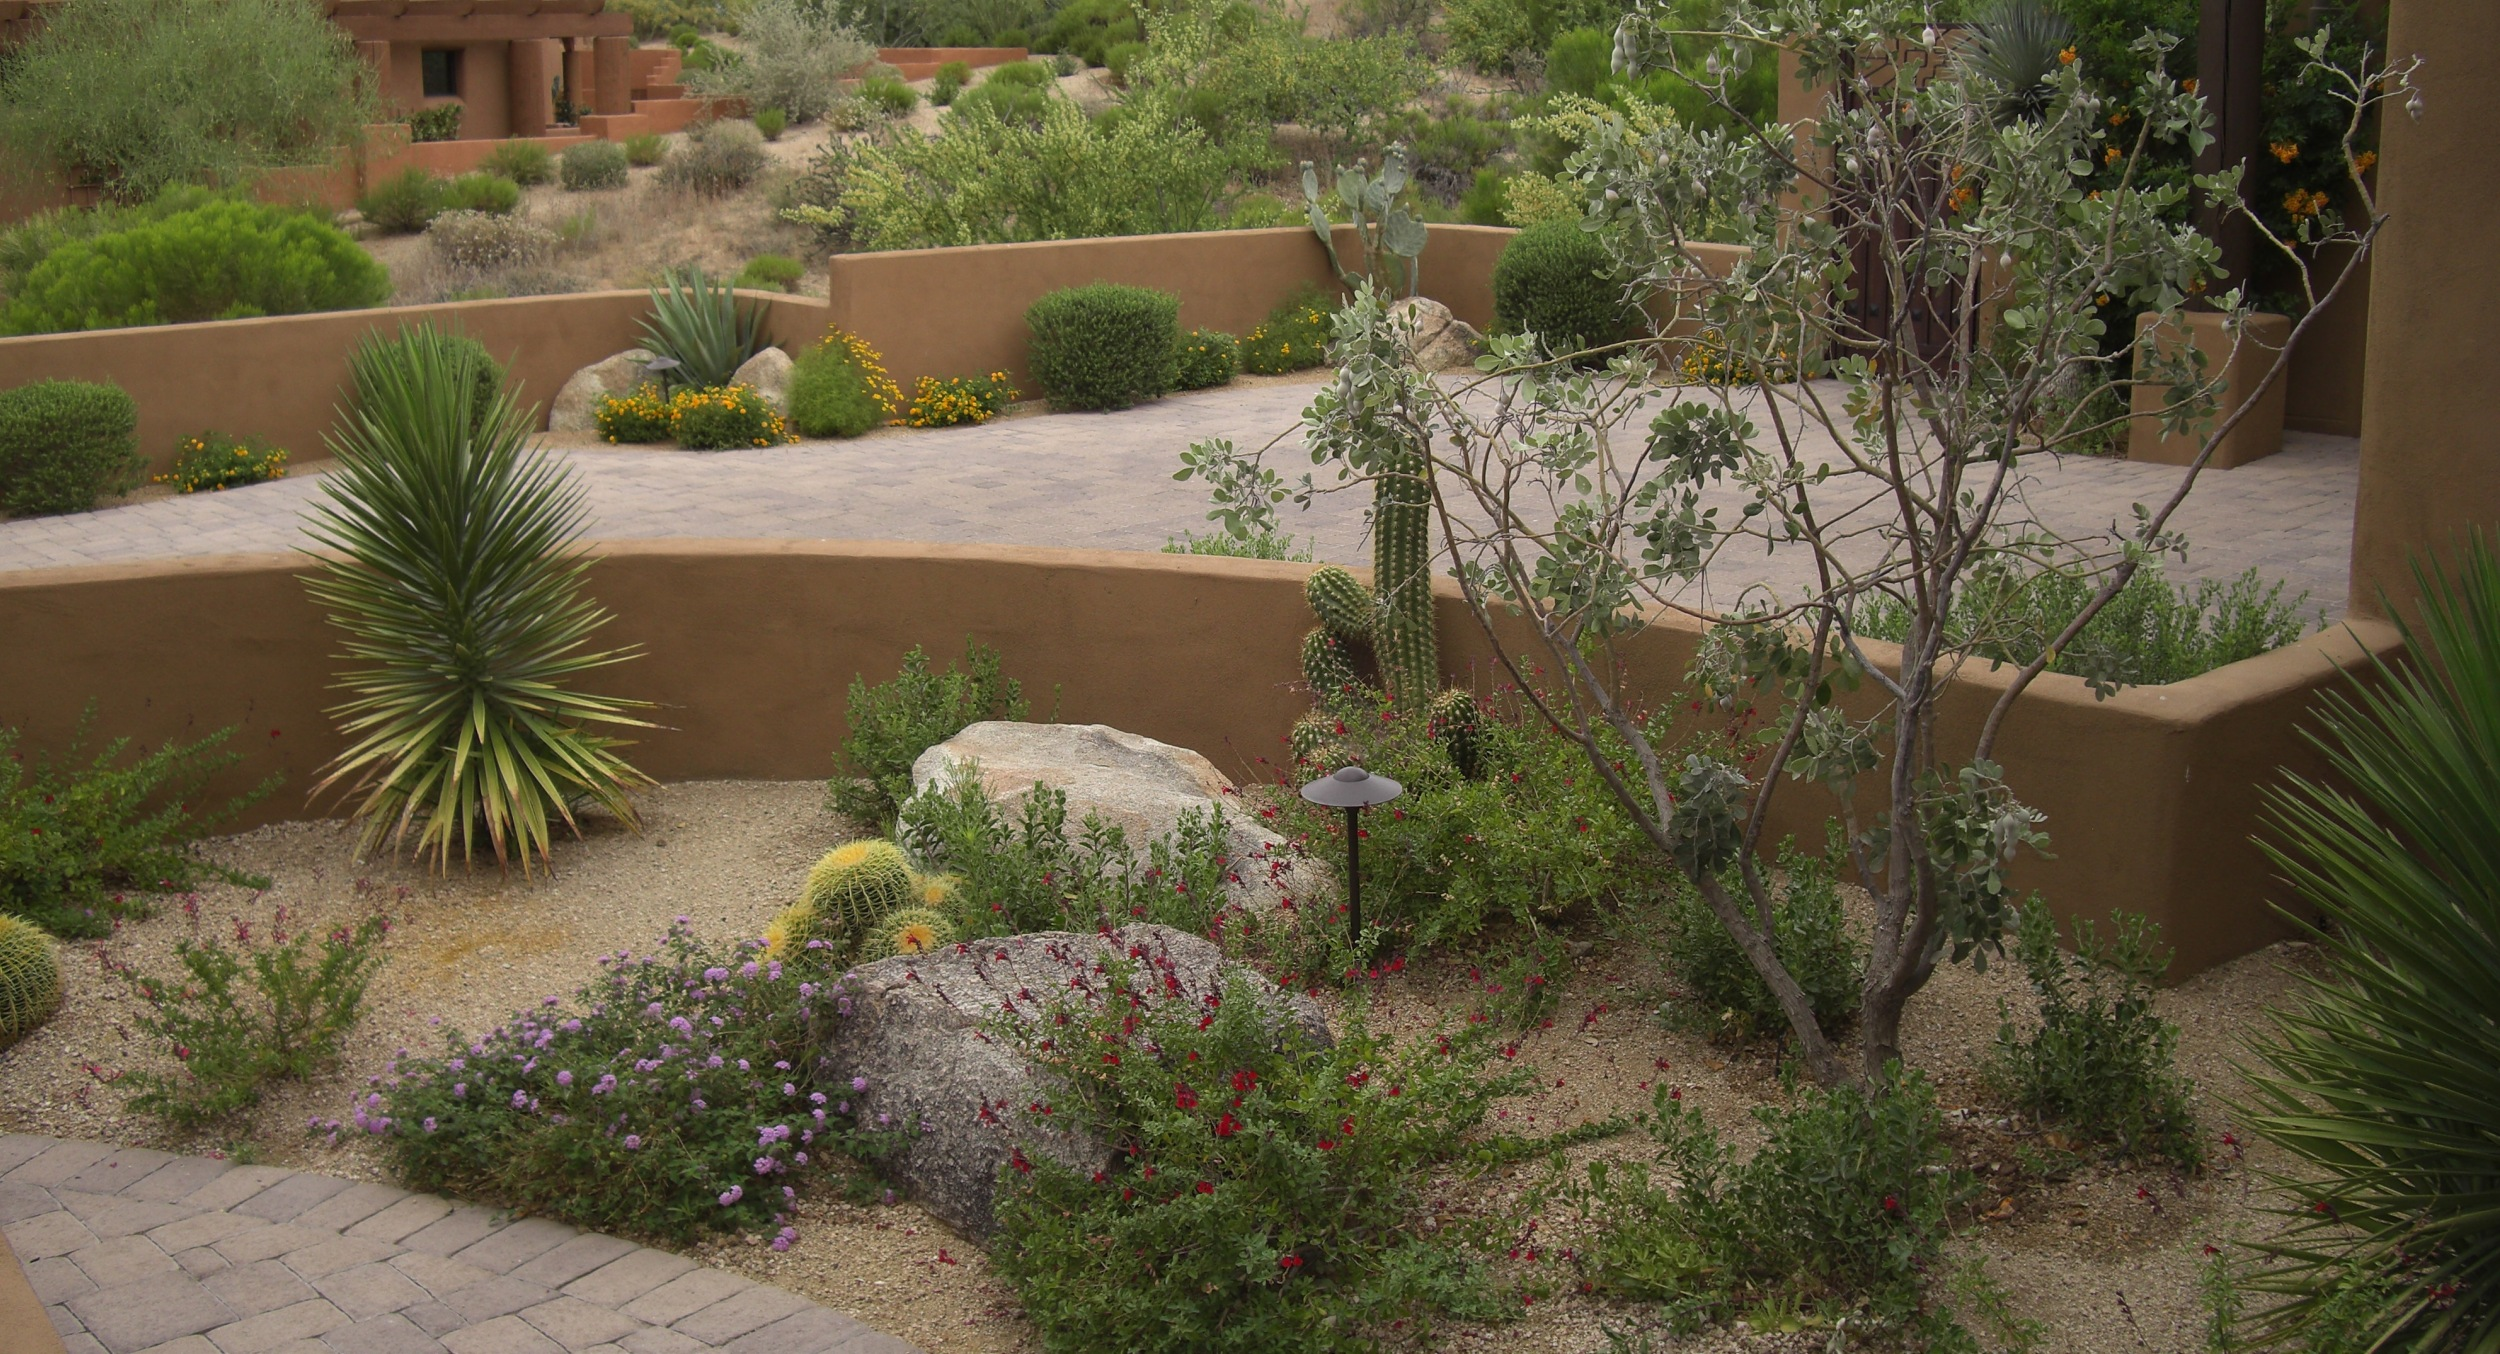 Desert tough plants arranged like a garden. Patio designs like this one immerse you in earthly delights that thrive here offer you low-maintenance Glendale, AZ landscaping that changes with the seasons.